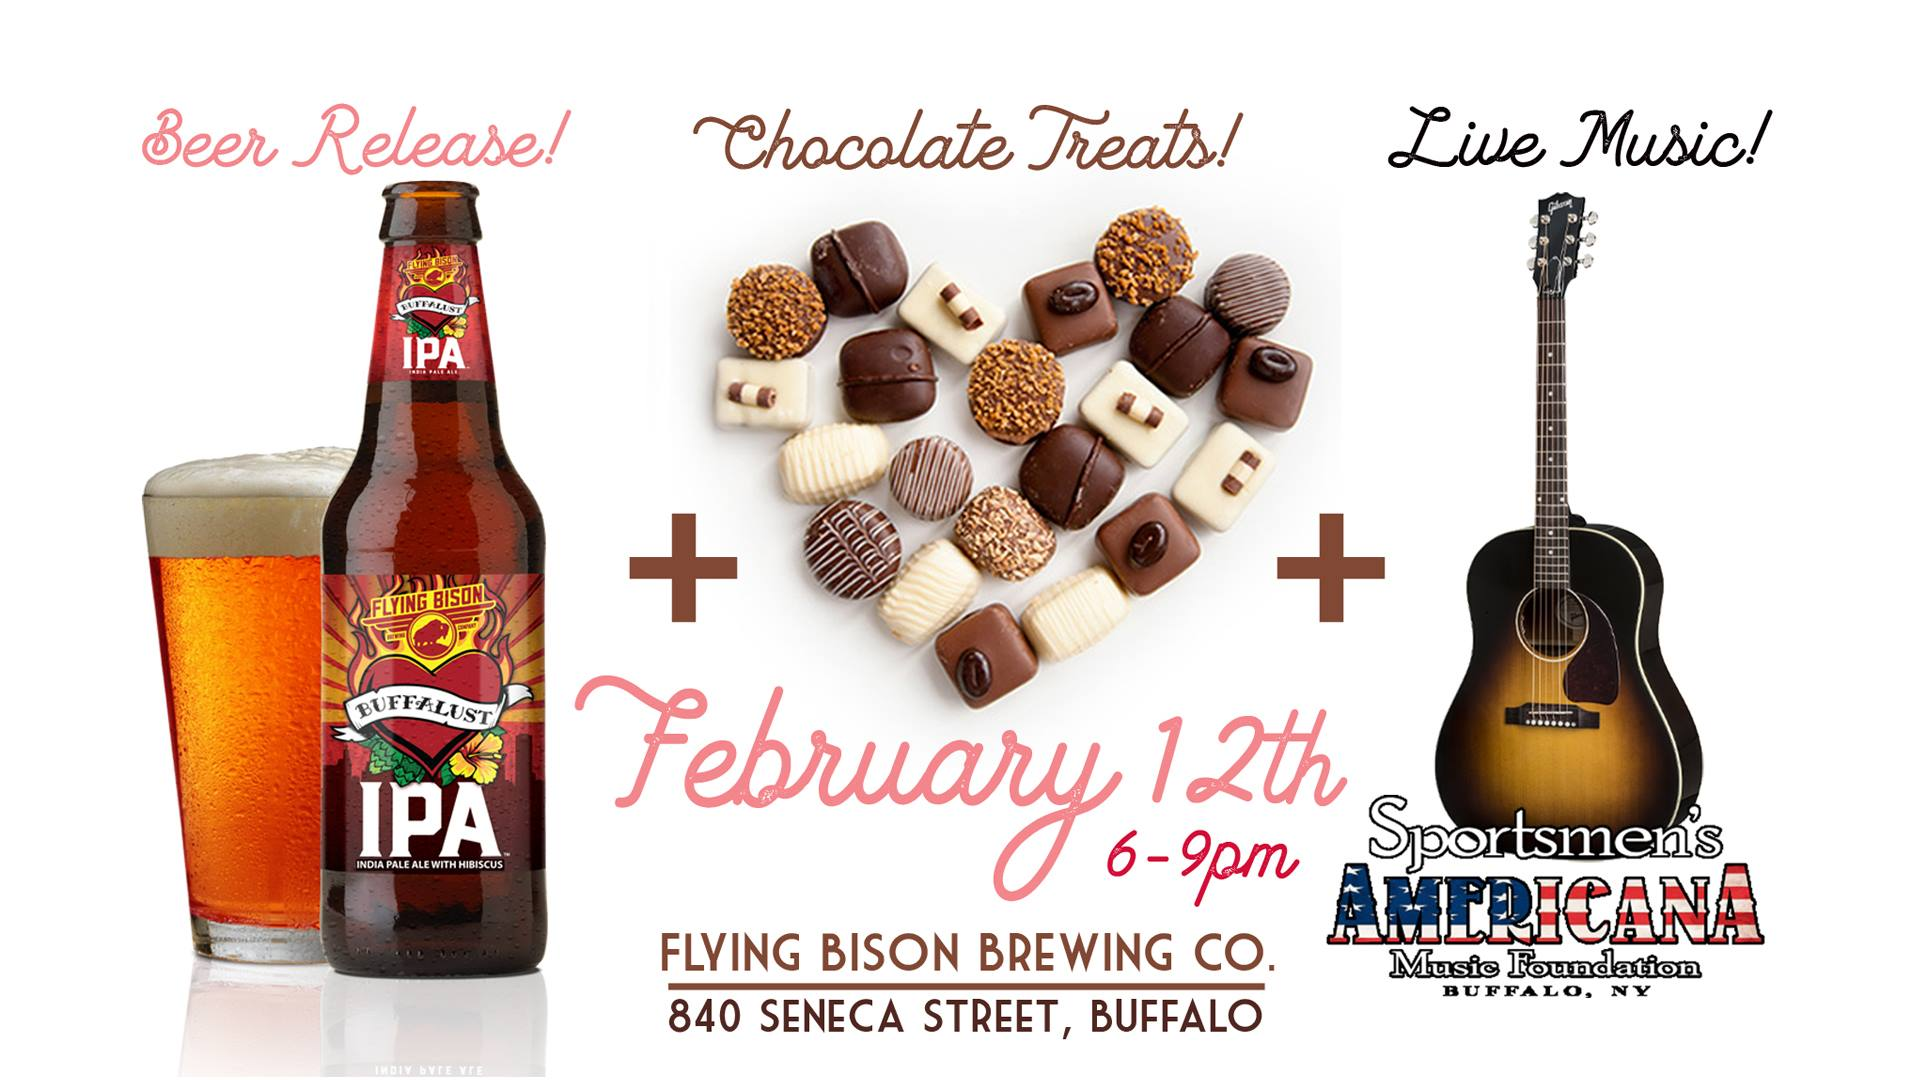 Coming Events: Beer & Chocolate, Szelestfest, etc.